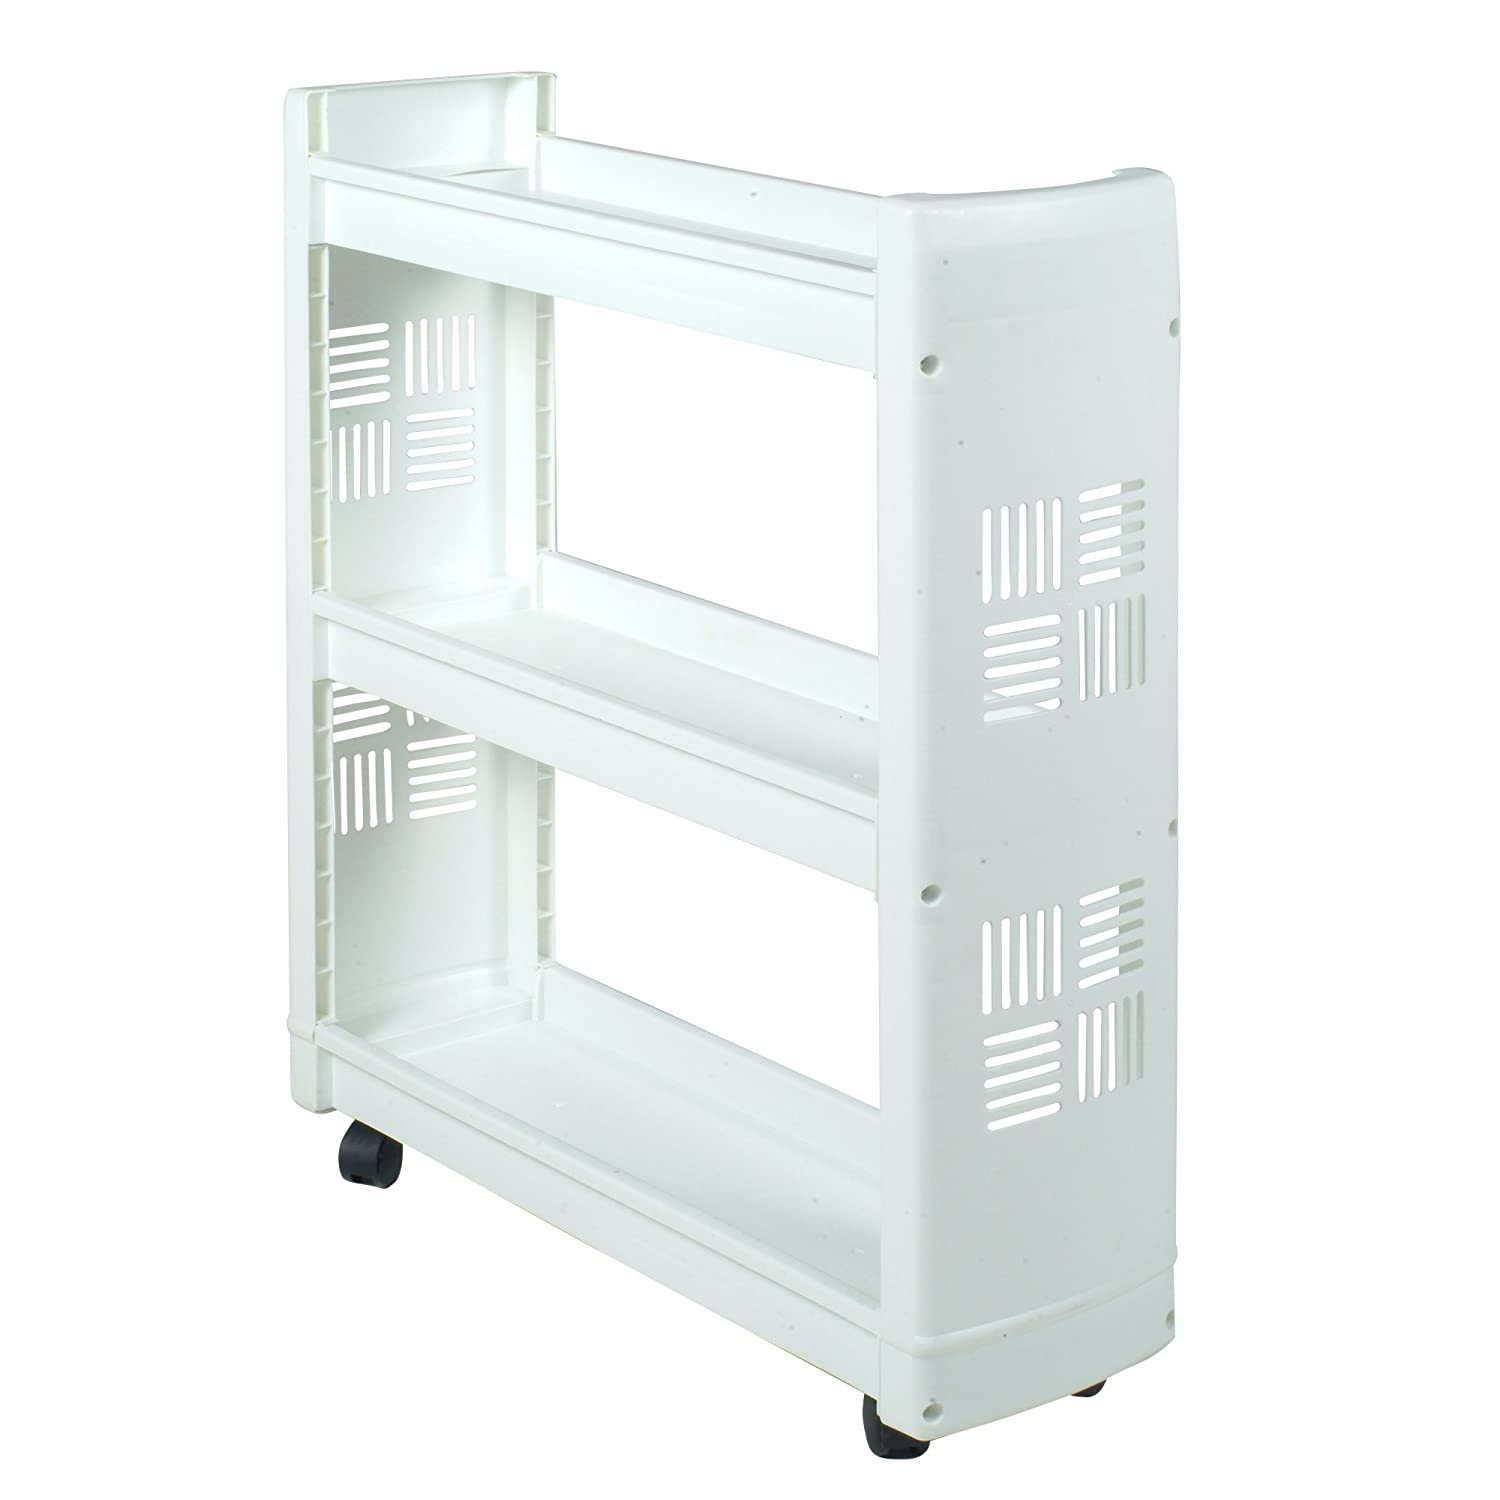 Amazon.com: Whirlpool 1903WH Laundry Supply Storage Cart: Home Improvement